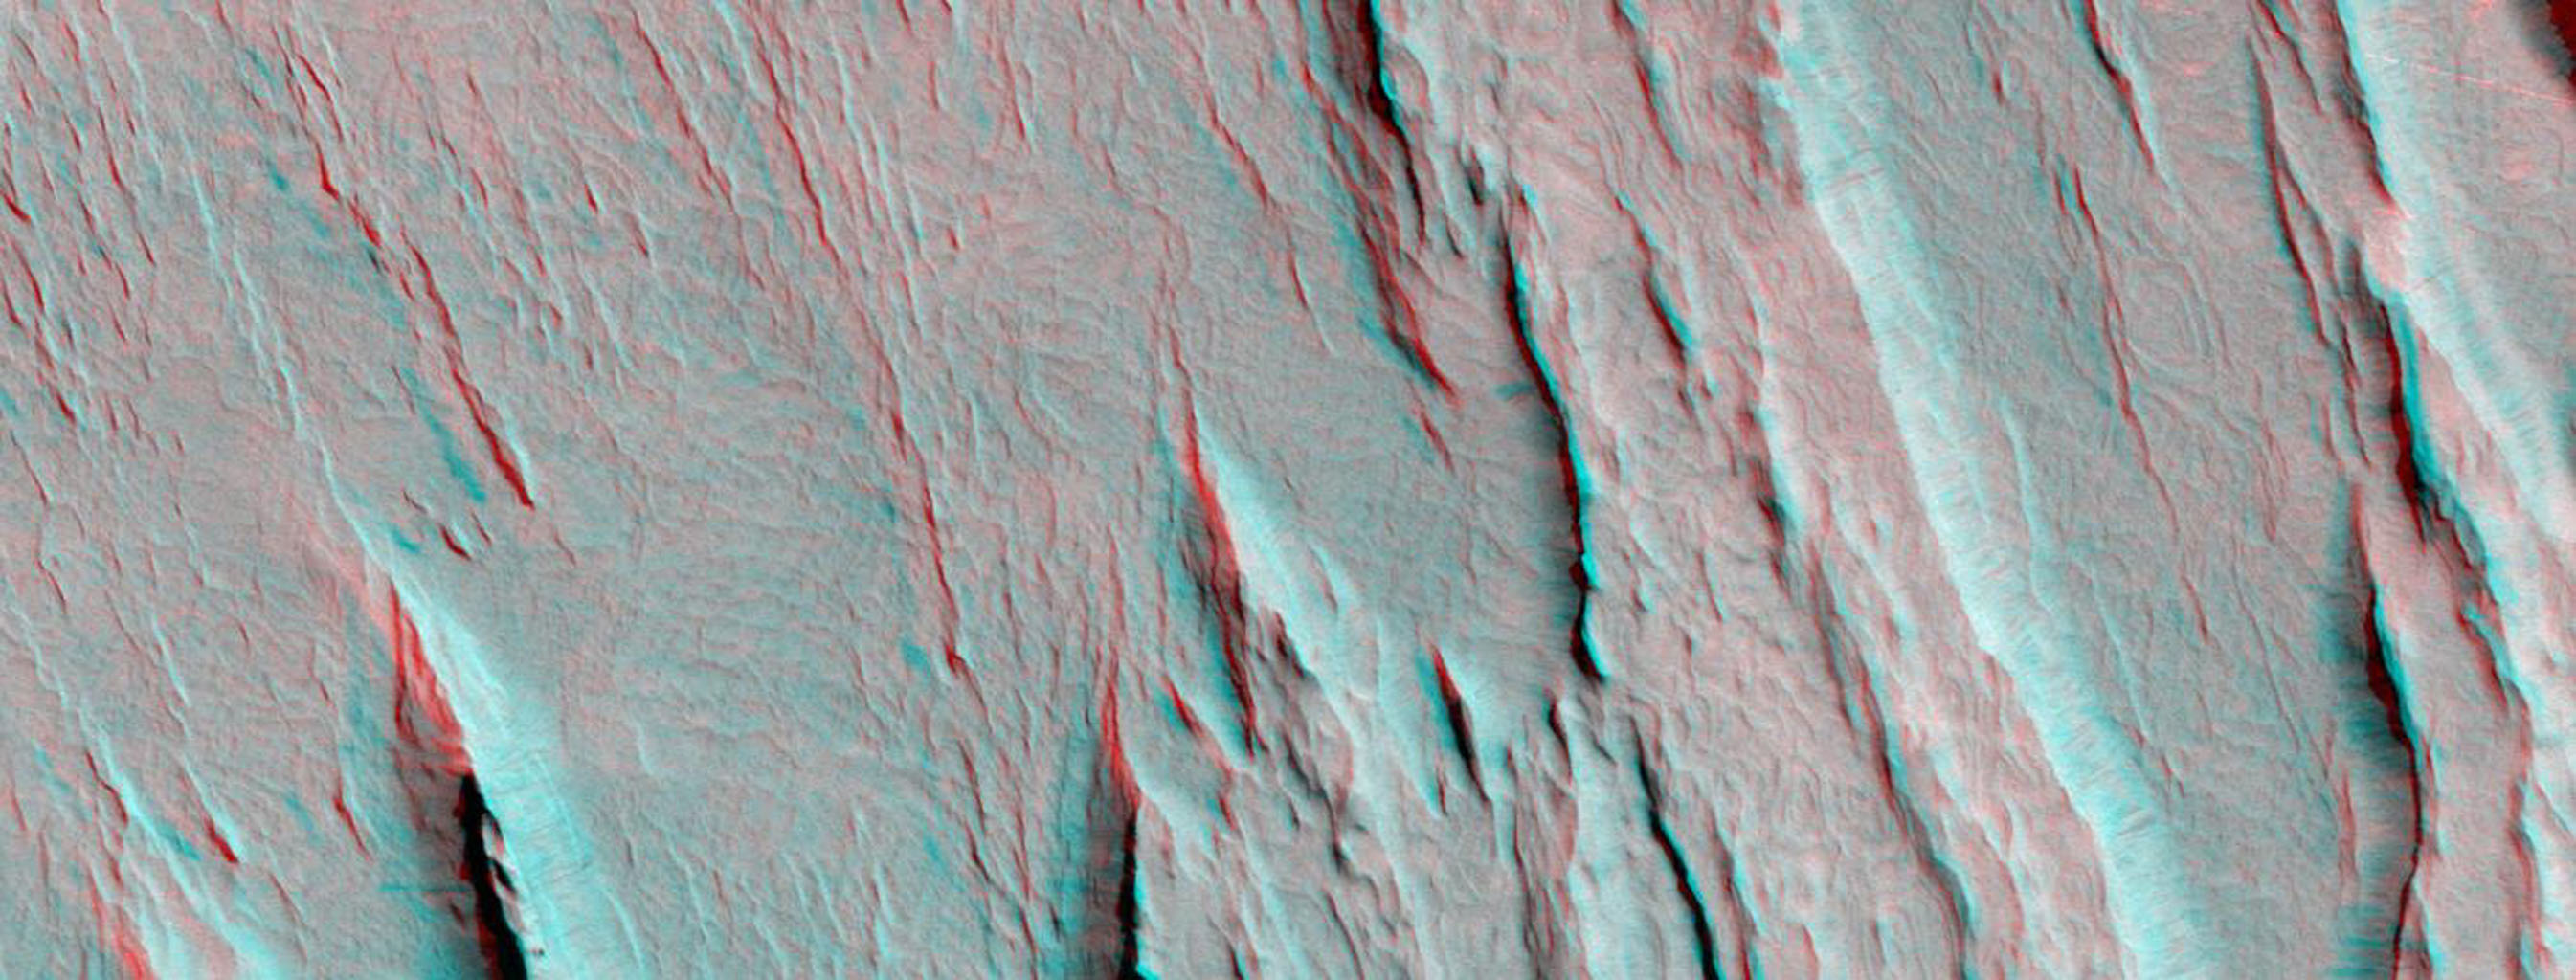 Layers of bedrock etched by wind to form sharp, elongated ridges known to geomorphologists as yardangs are commonplace in the southern Elysium Planitia/southern Amazonis region of Mars. 3D glasses are necessary to view this image.